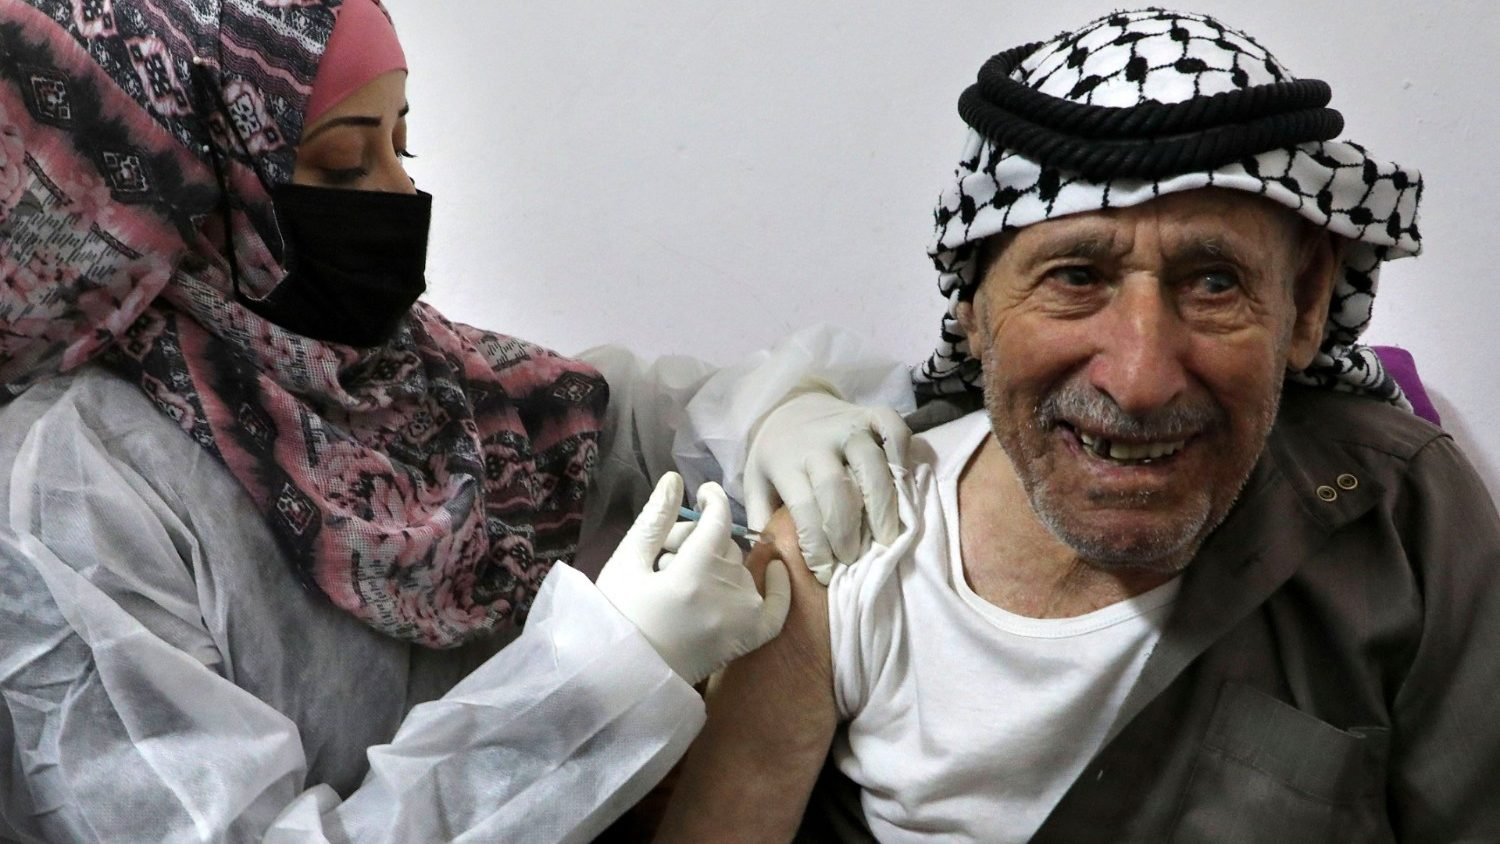 WCC calls for access to vaccines for Palestinians in Occupied Territories - Vatican News